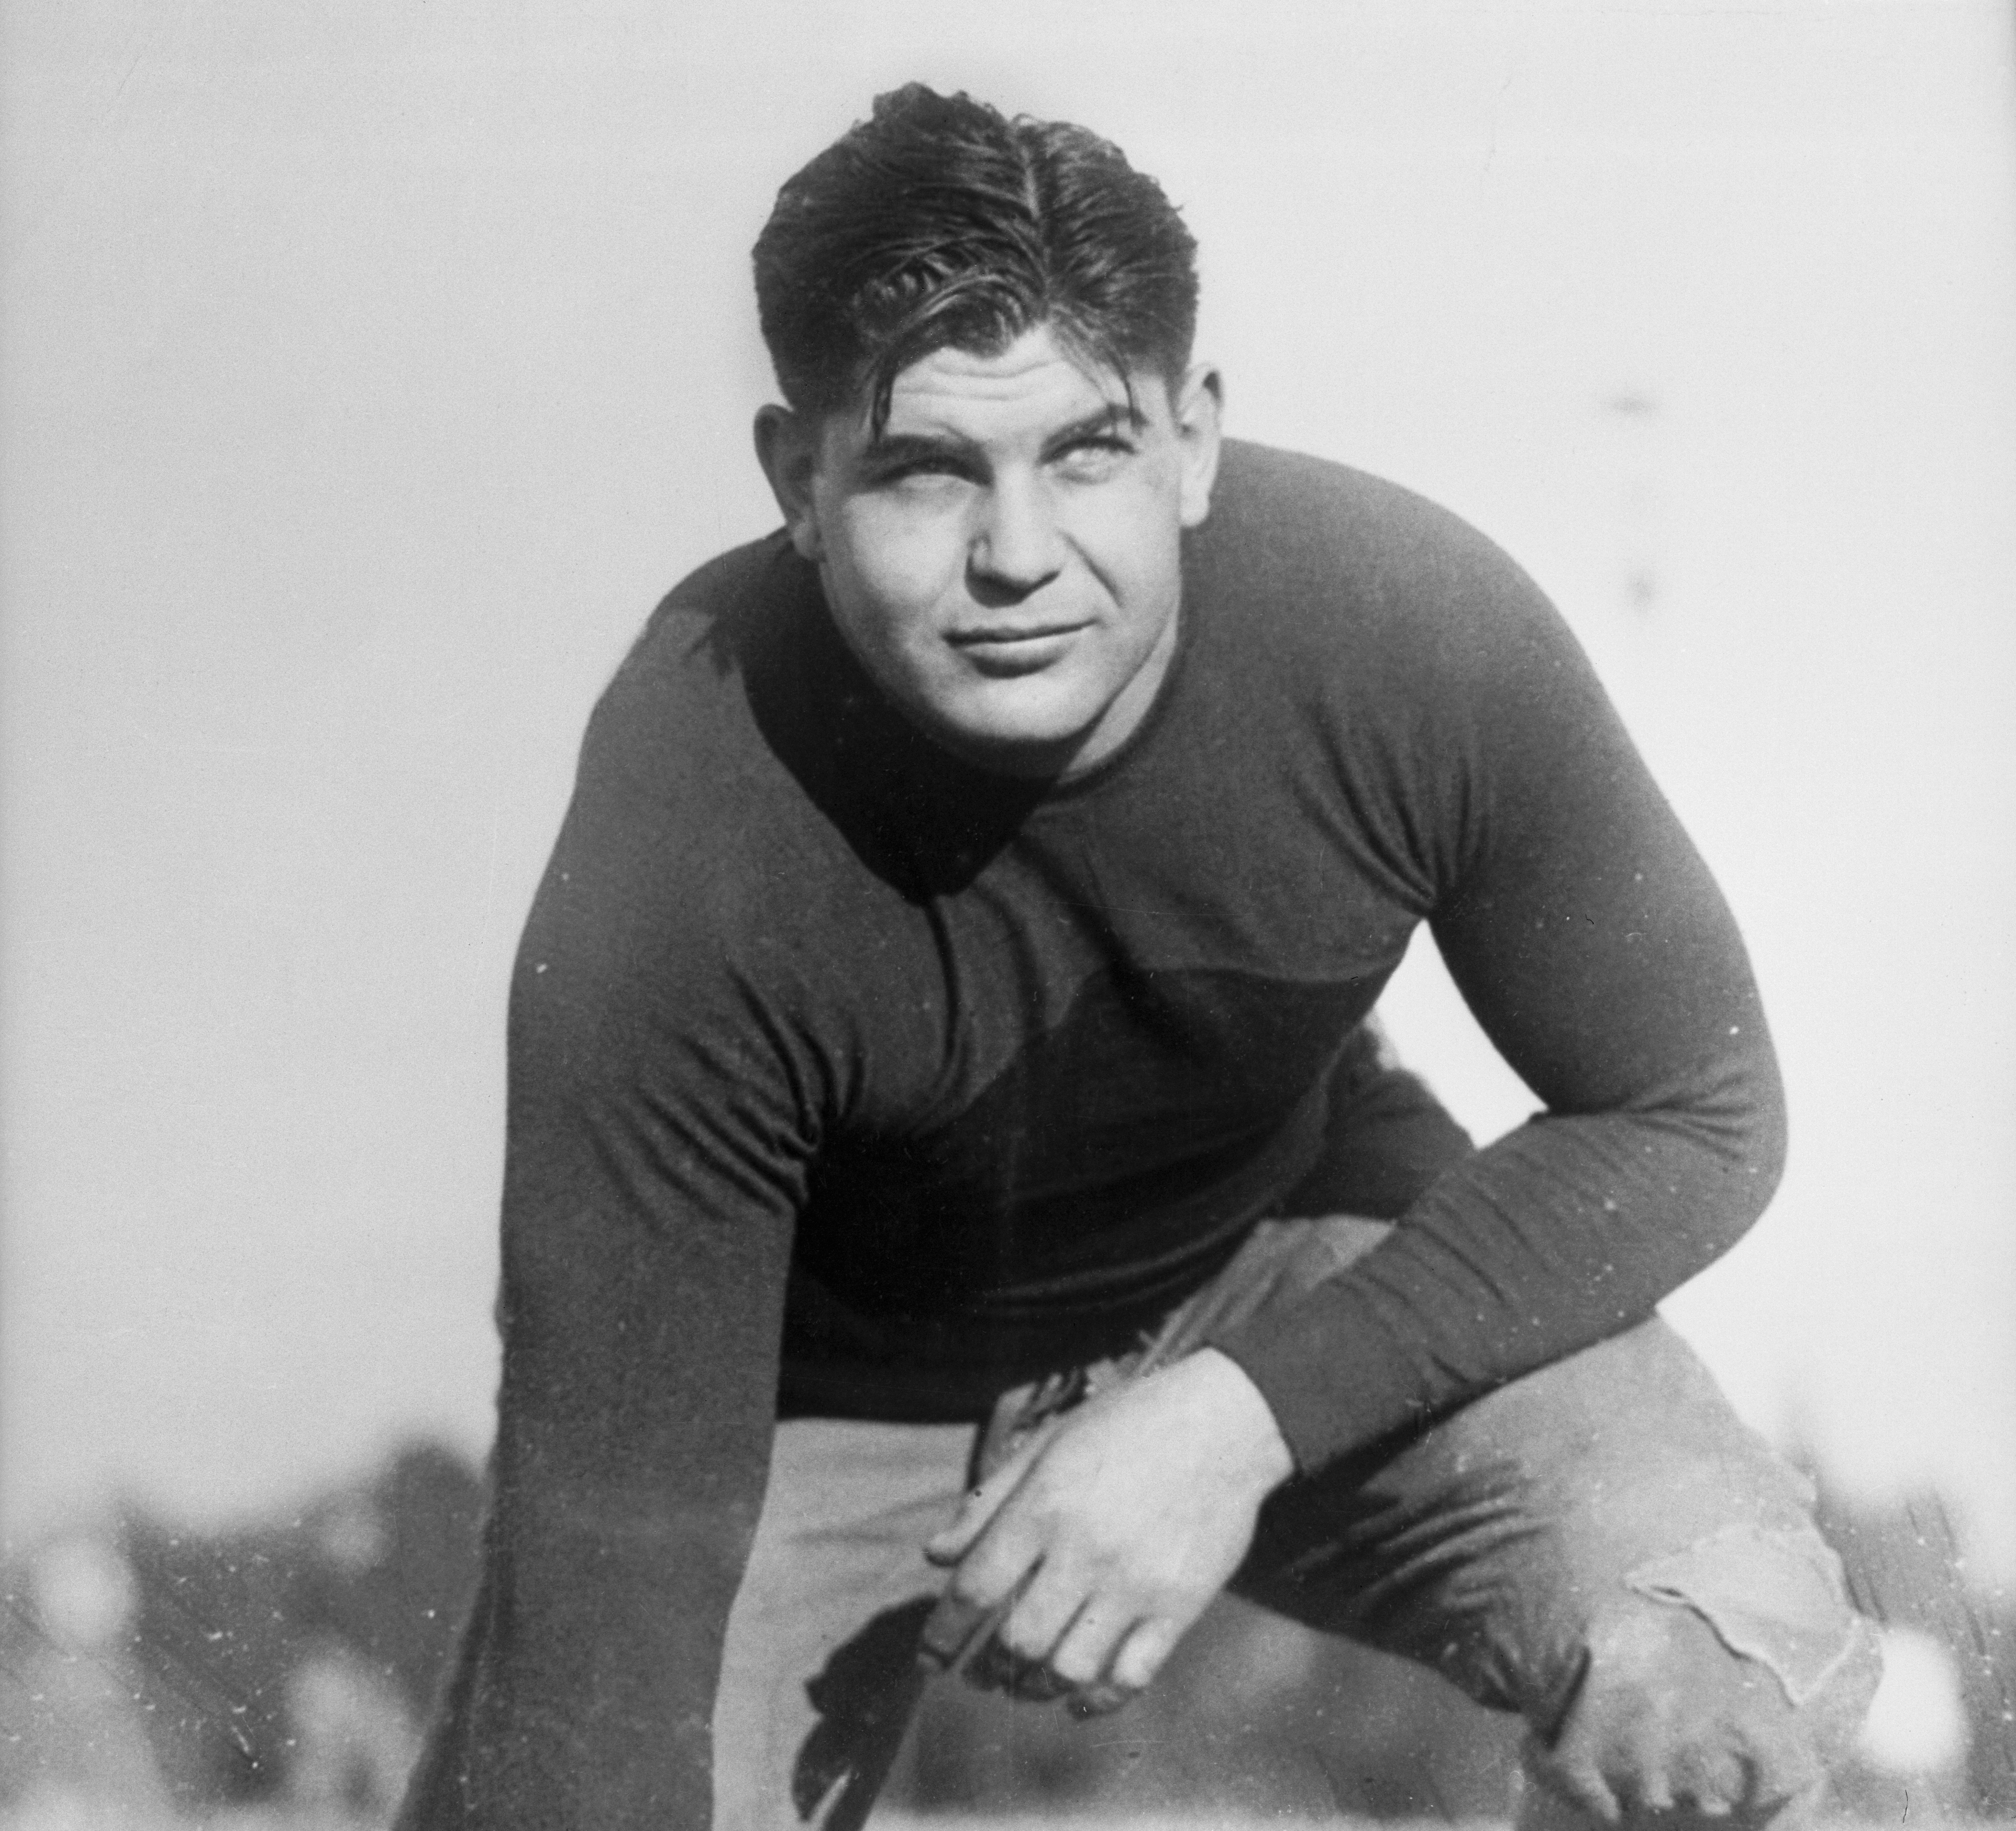 Tackle Turk Edwards in 1930